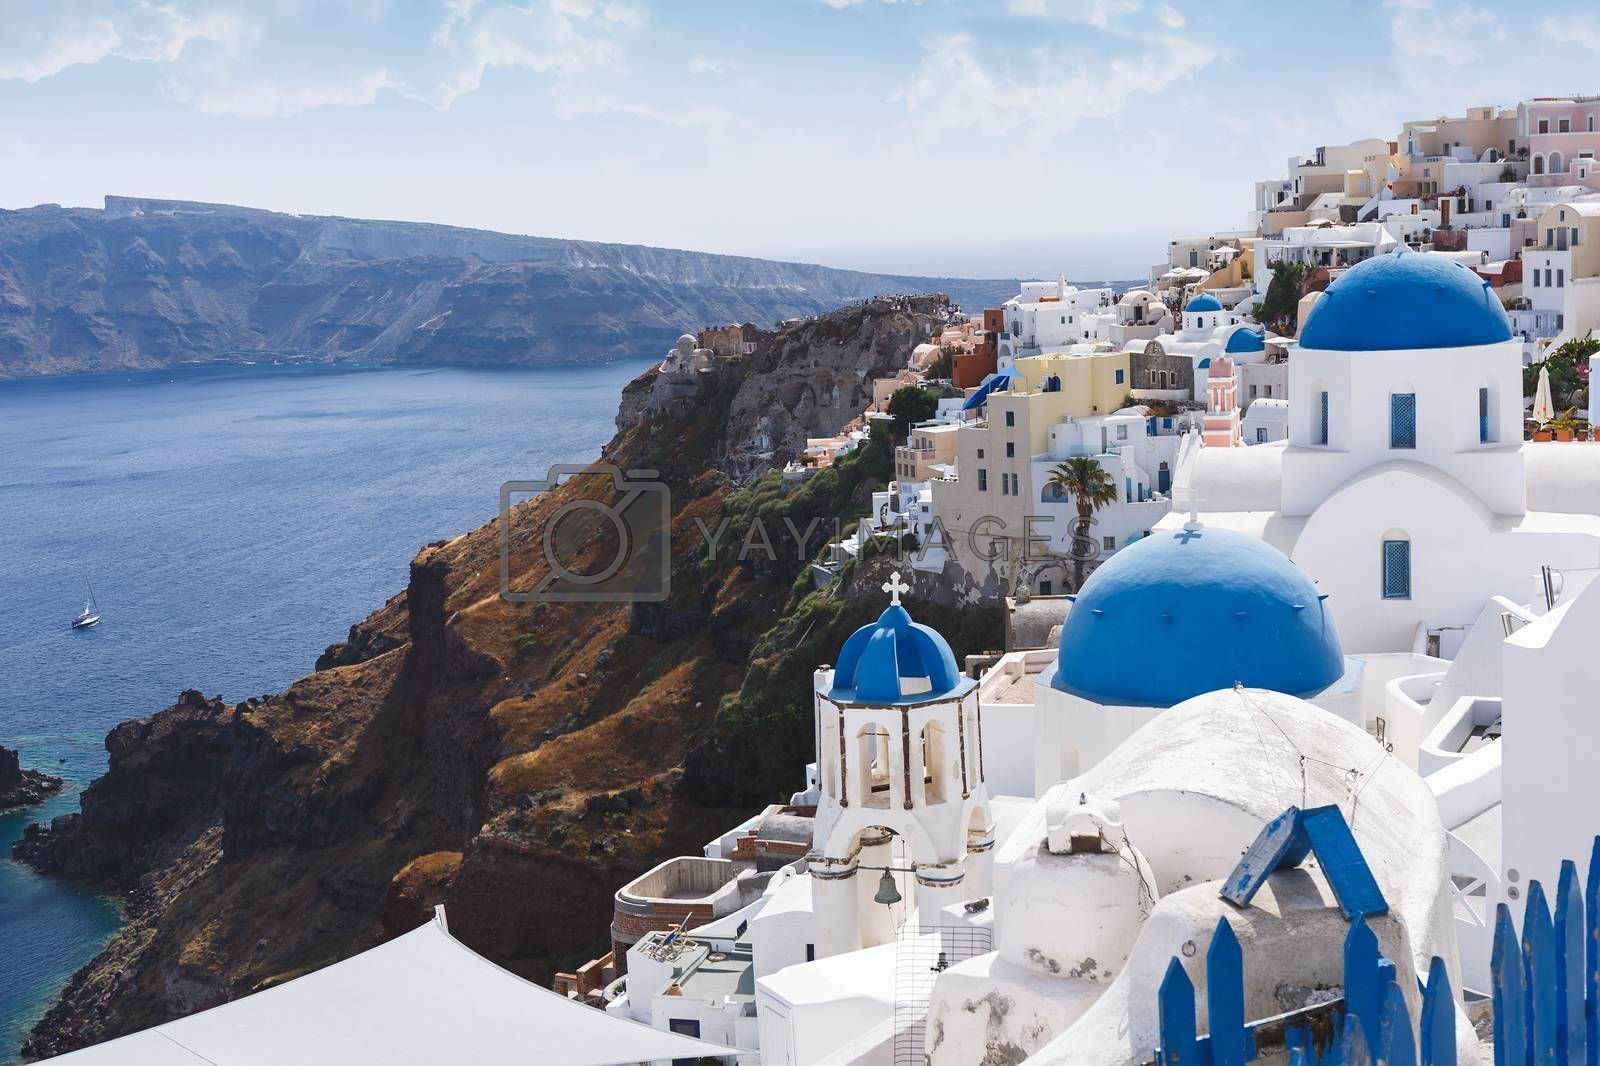 Blue domes and bell tower of churches in Oia, Santorini, Greece.  The edge of the caldera with the blue domes of churches in the foreground, selective focus